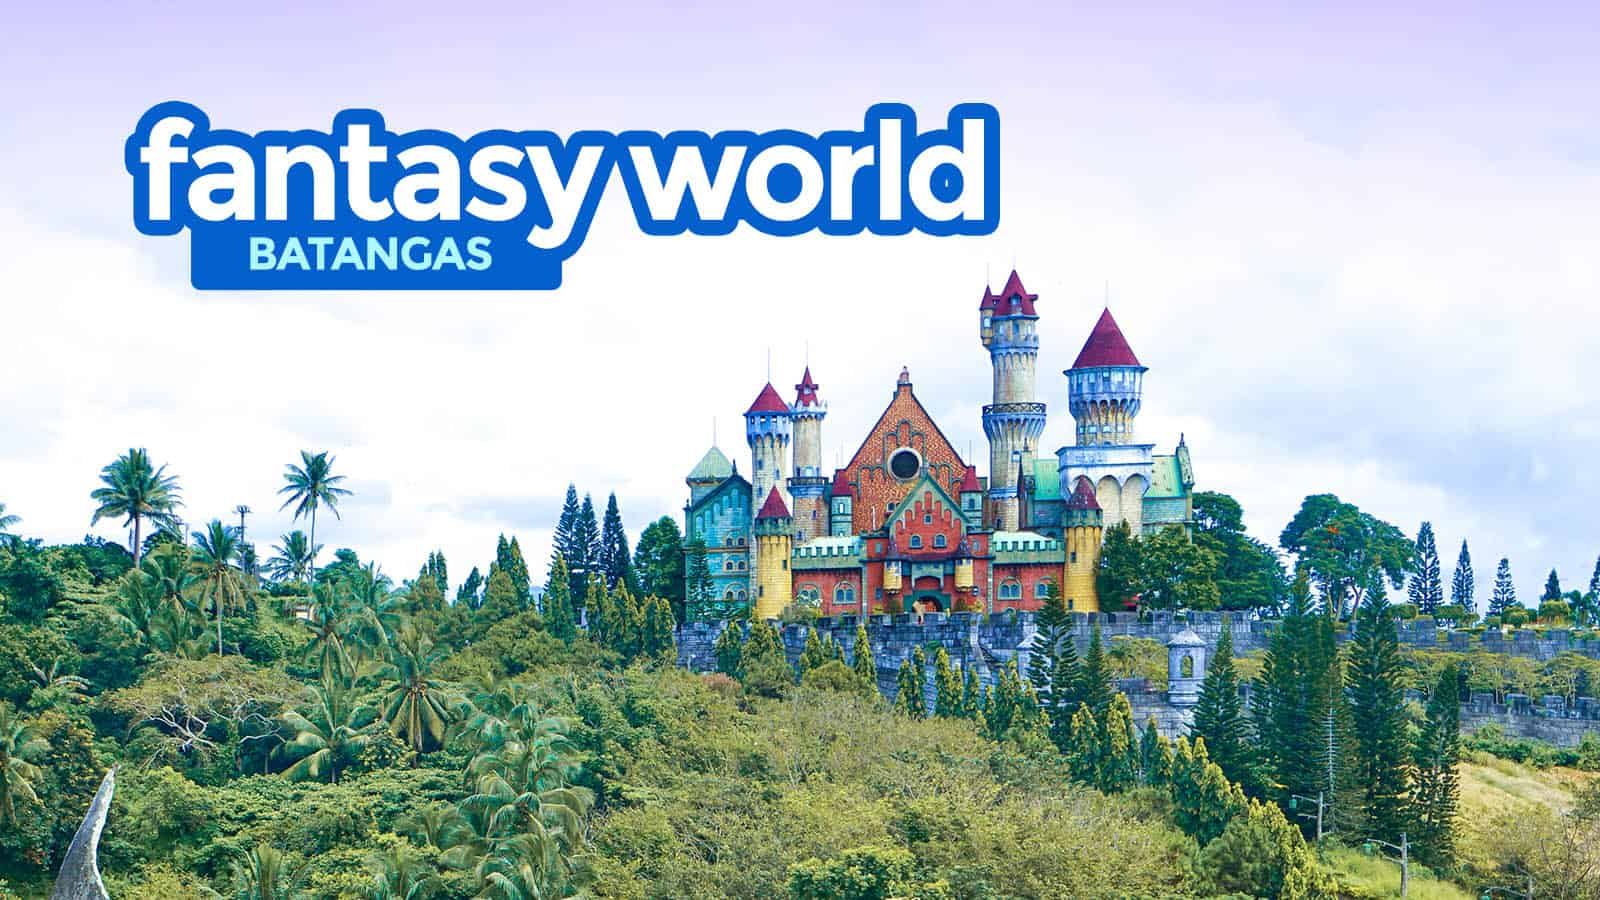 FANTASY WORLD TRAVEL GUIDE: Abandoned Castle in Batangas